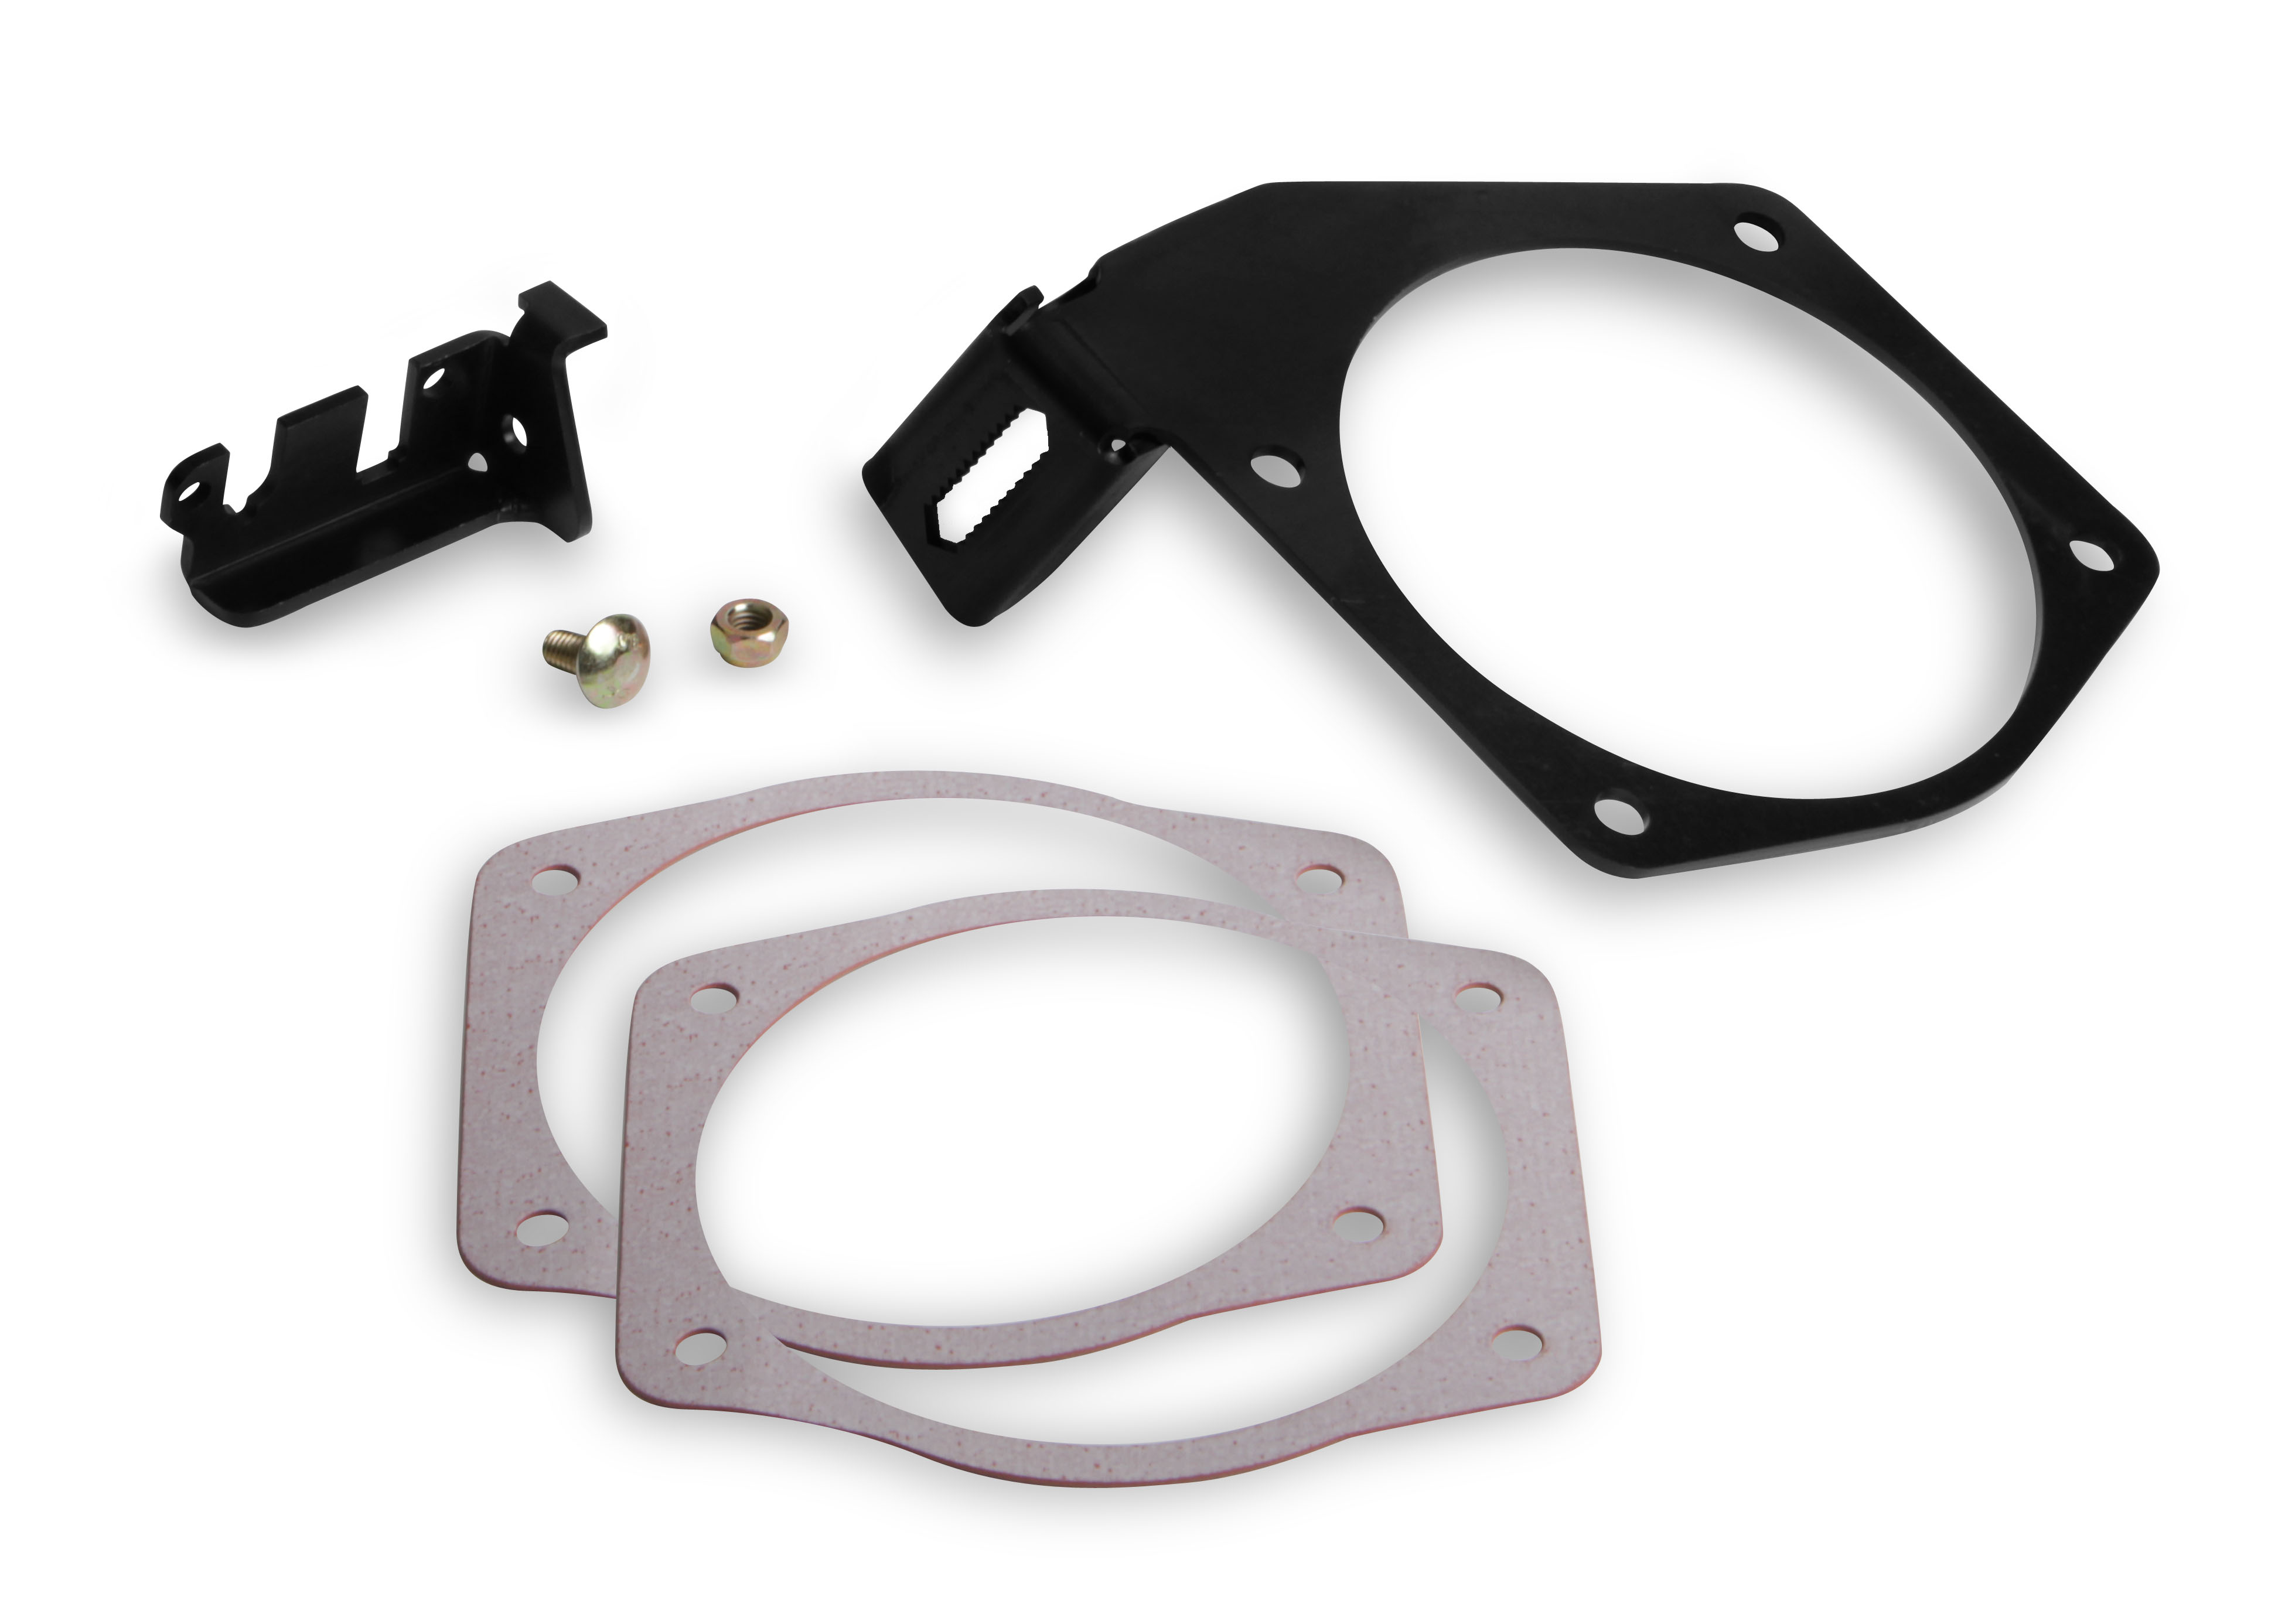 LS Holley Cable Bracket for 95mm Throttle Bodies & Factory or FAST Style Intakes